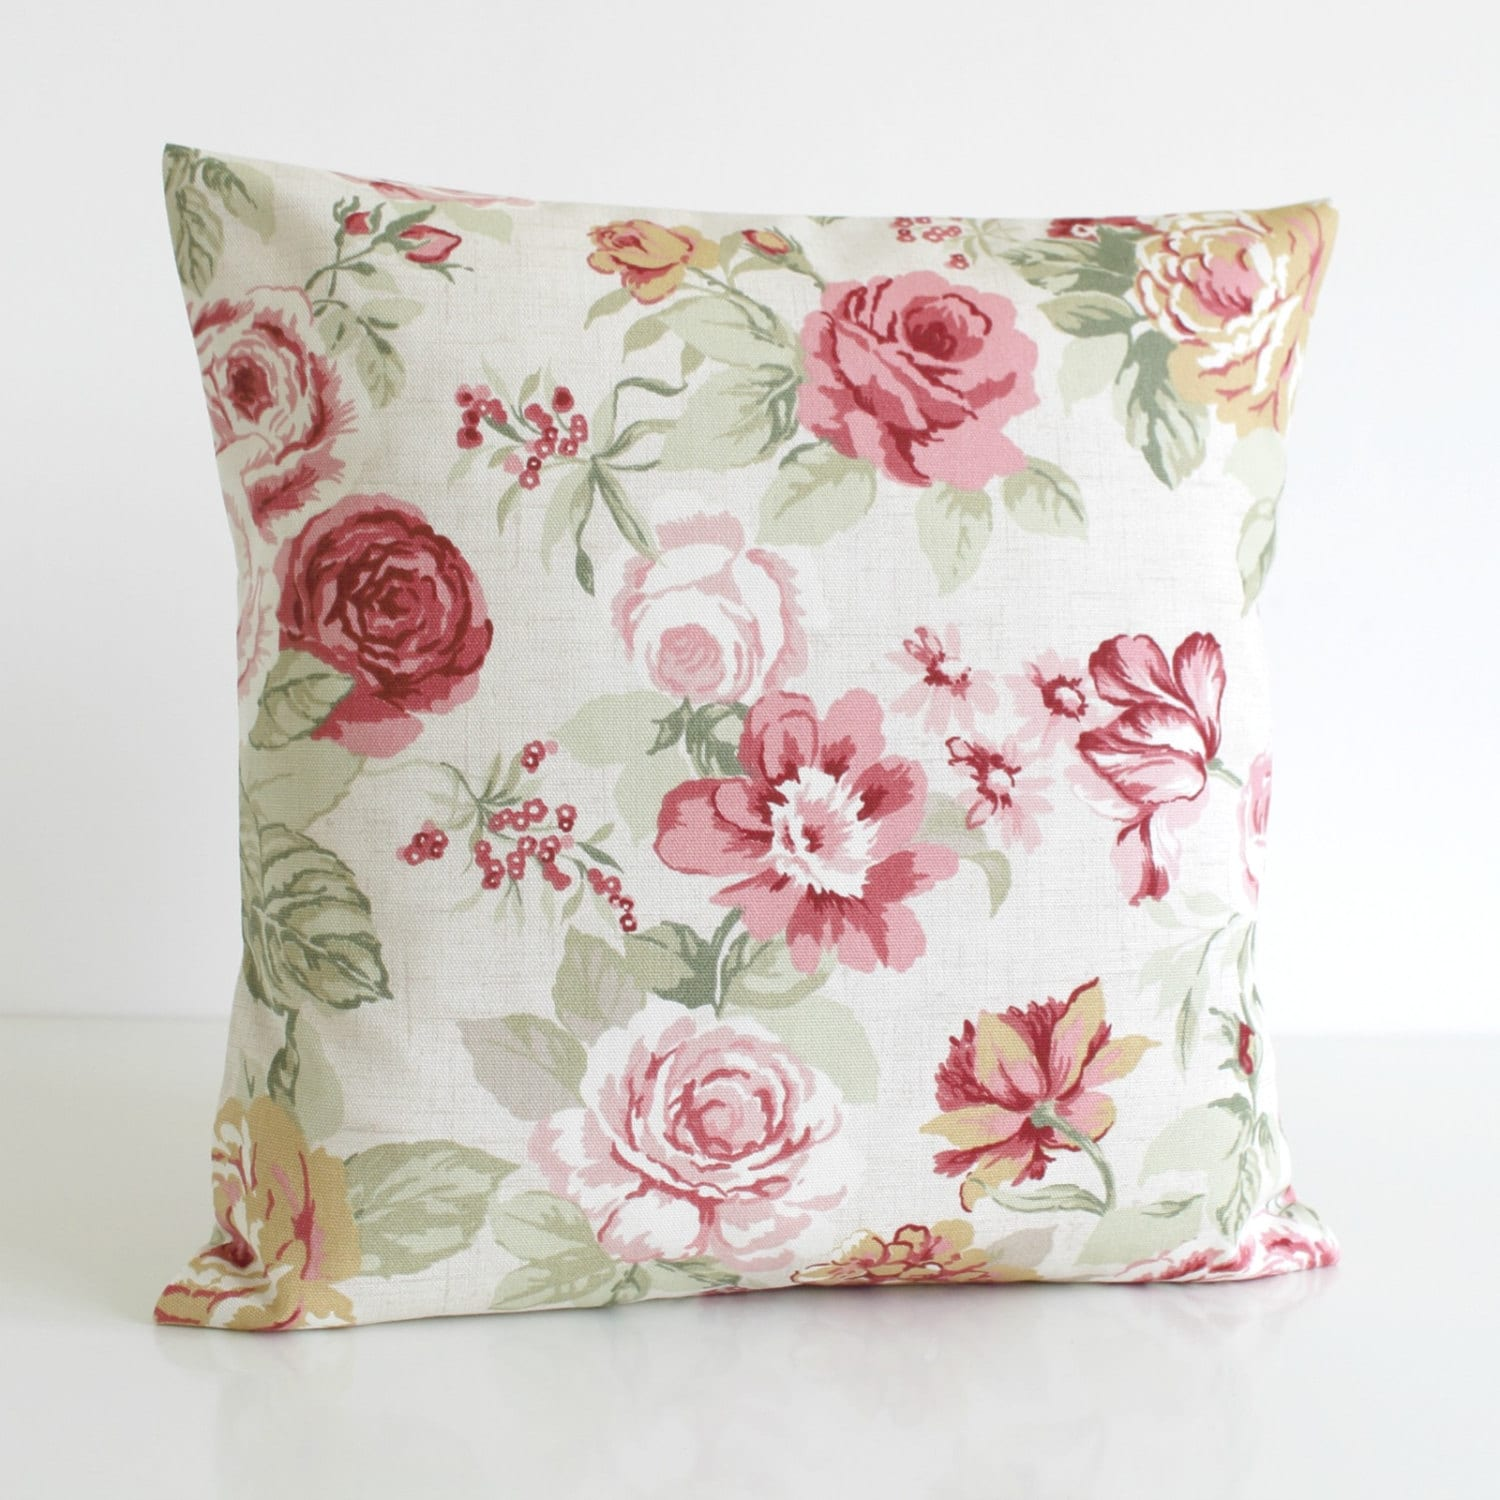 Decorative Floral Pillow Covers : Shabby Chic Decorative Pillow Cover Floral Cushion by CoupleHome